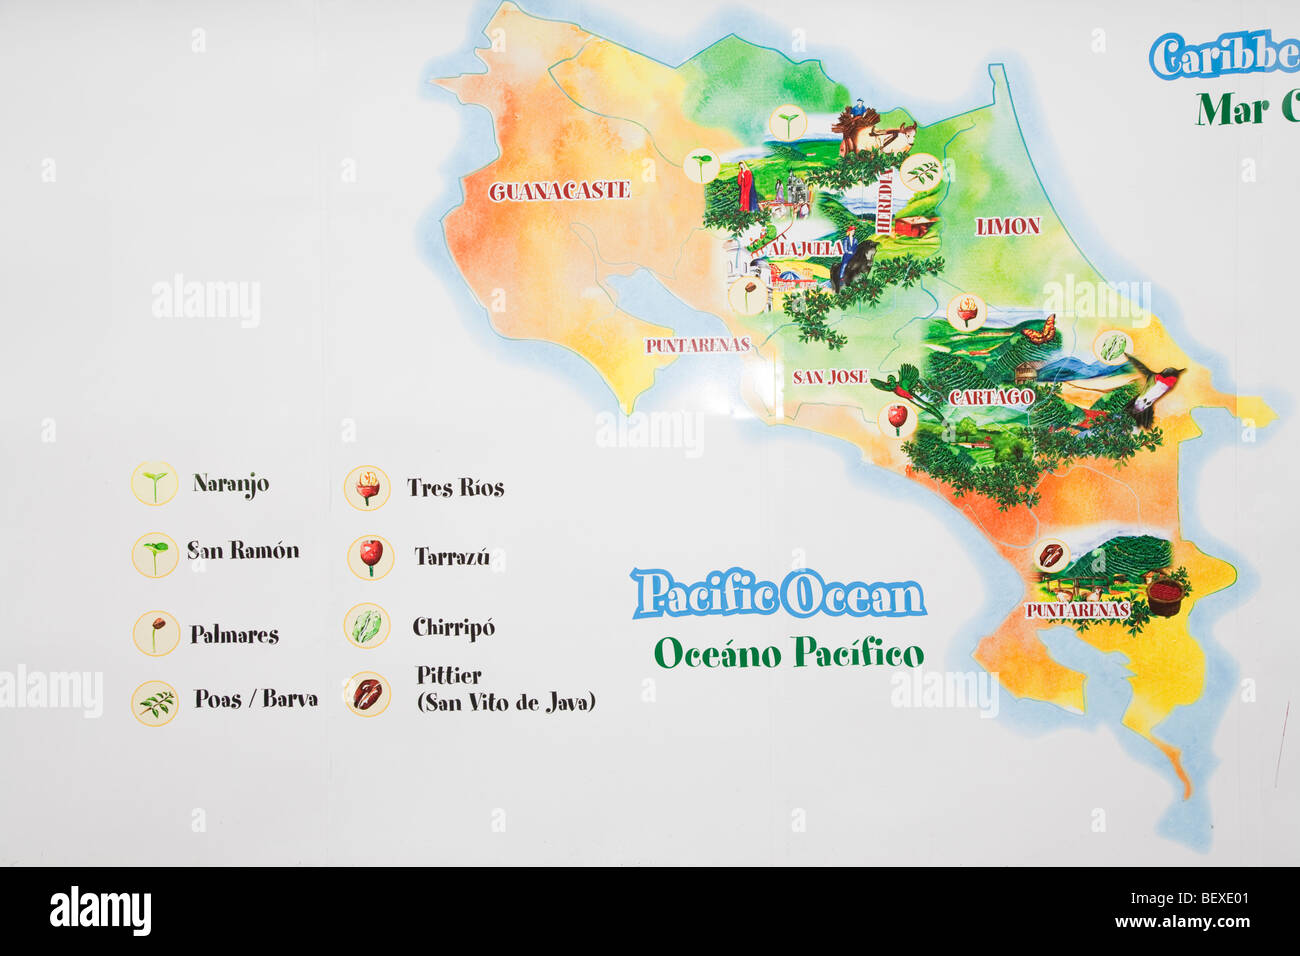 Costa Rica Coffee Tour Map